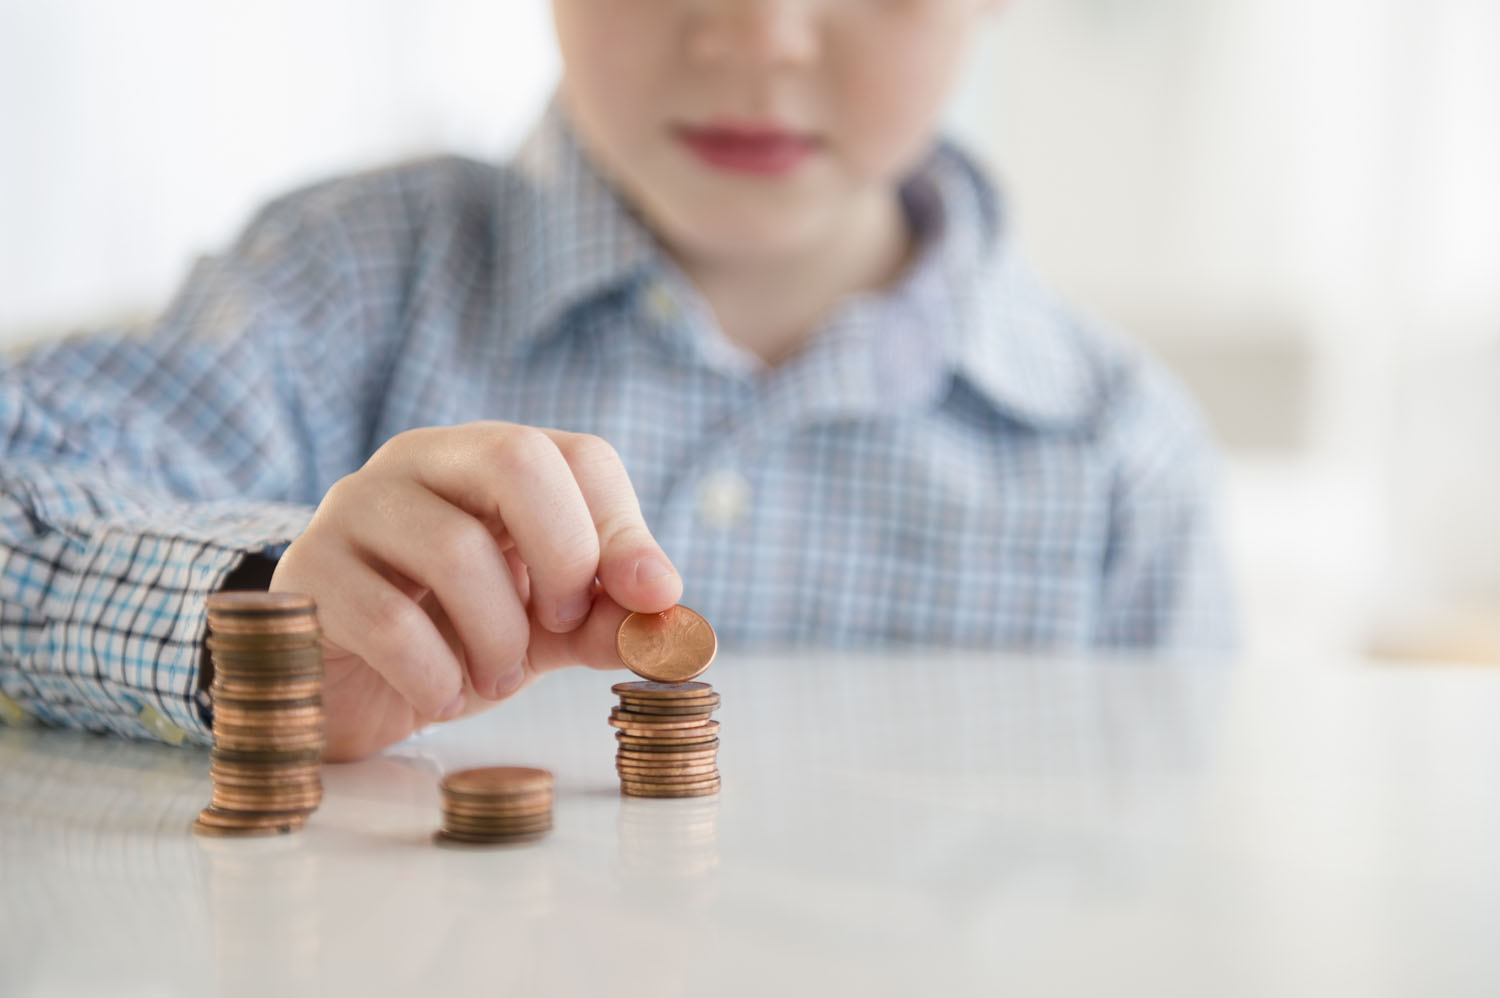 A new study shows children are receiving larger allowances from their parents.